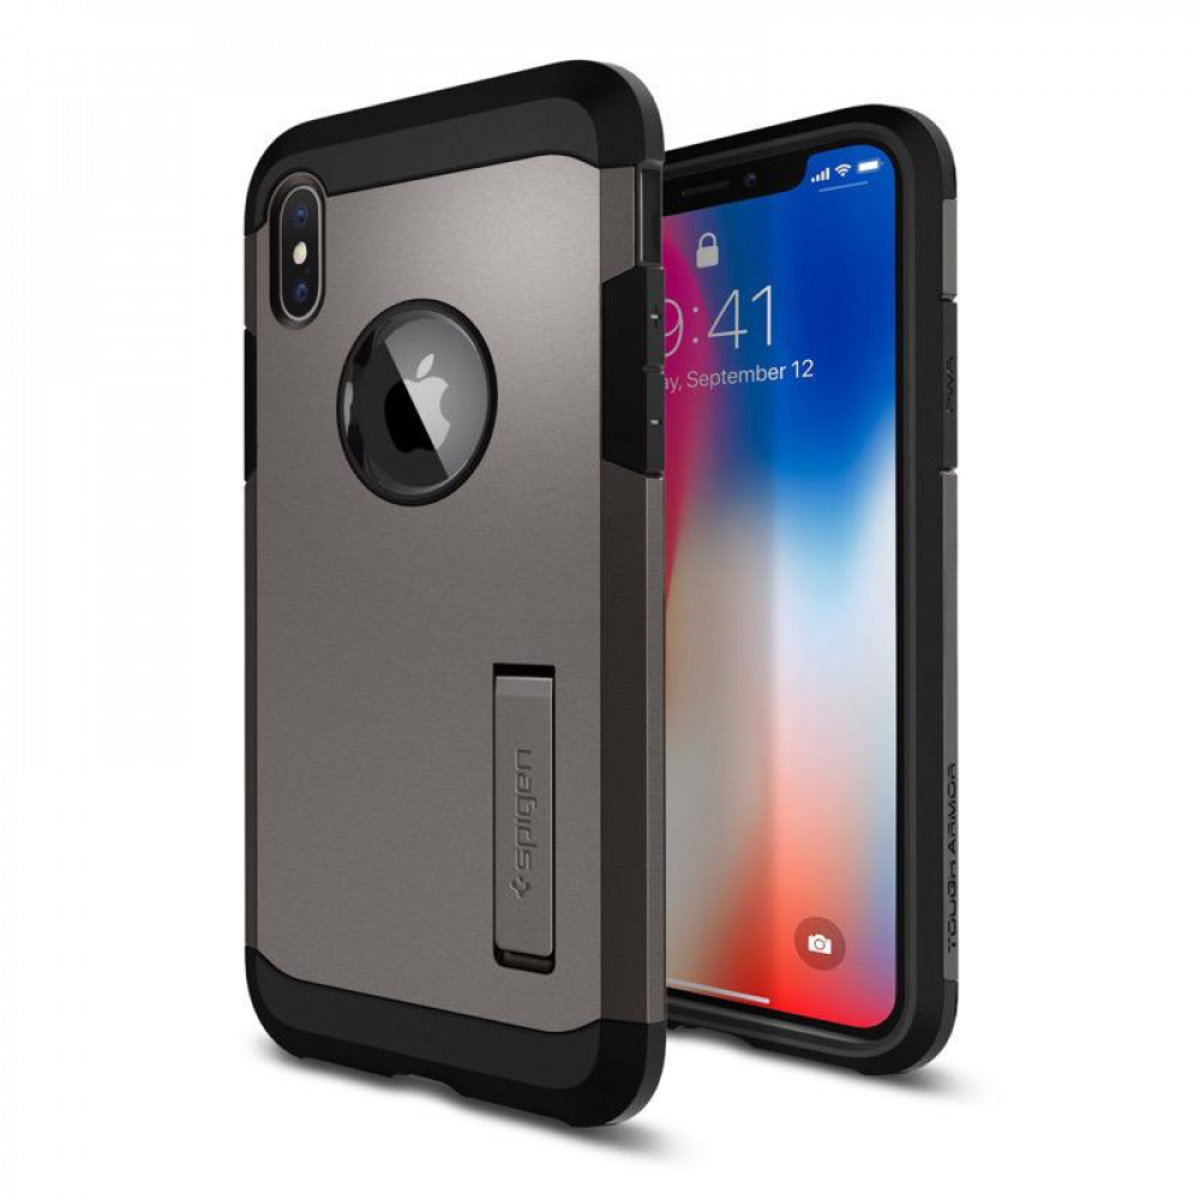 iPhone X Case Tough Armor 保護殻 - 灰